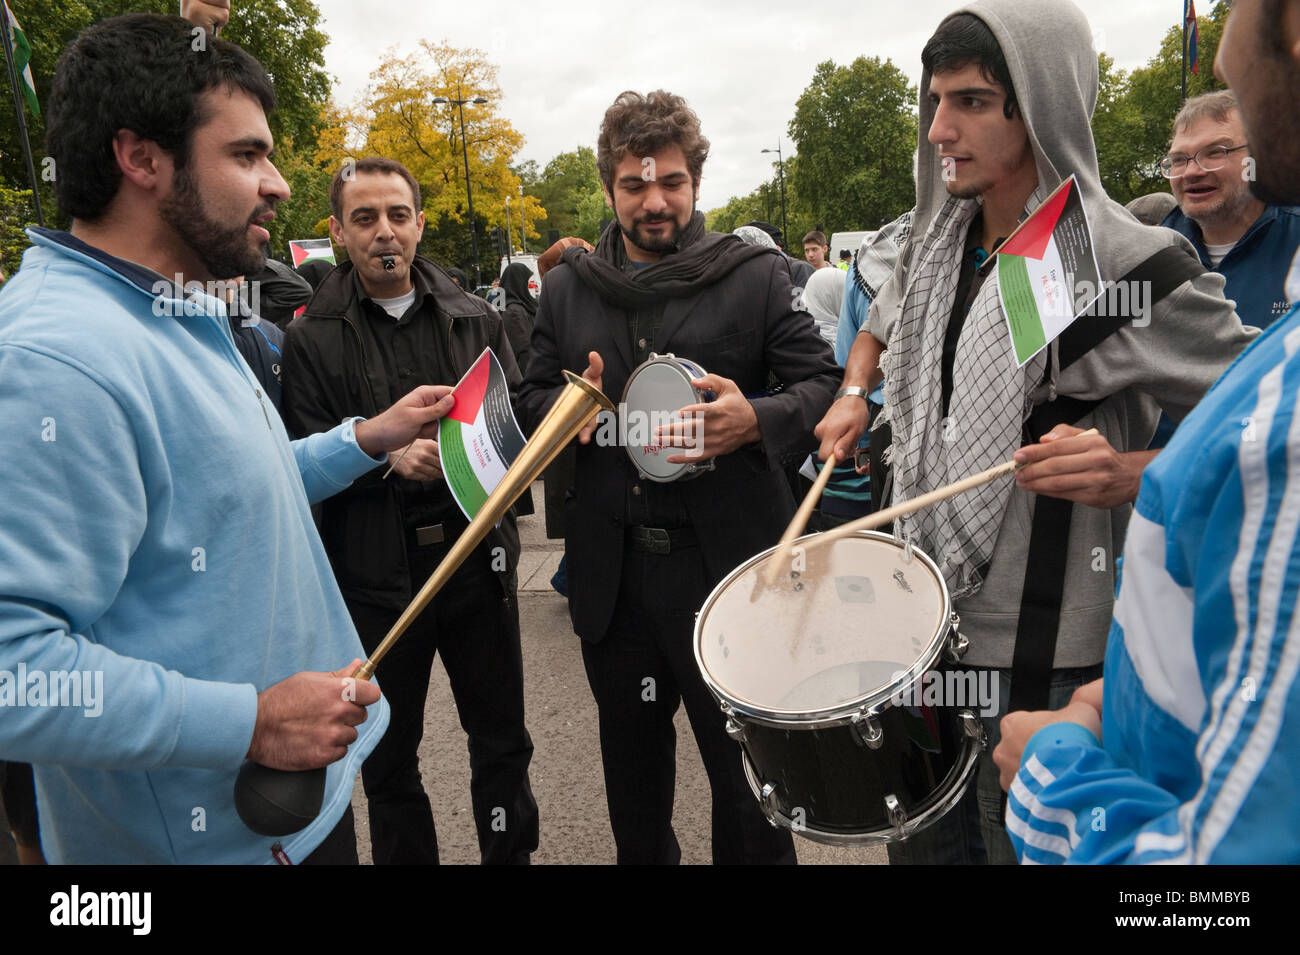 Young Muslim men with drums and instruments at Al Quds Day (Jerusalem Day) march in London - Stock Image